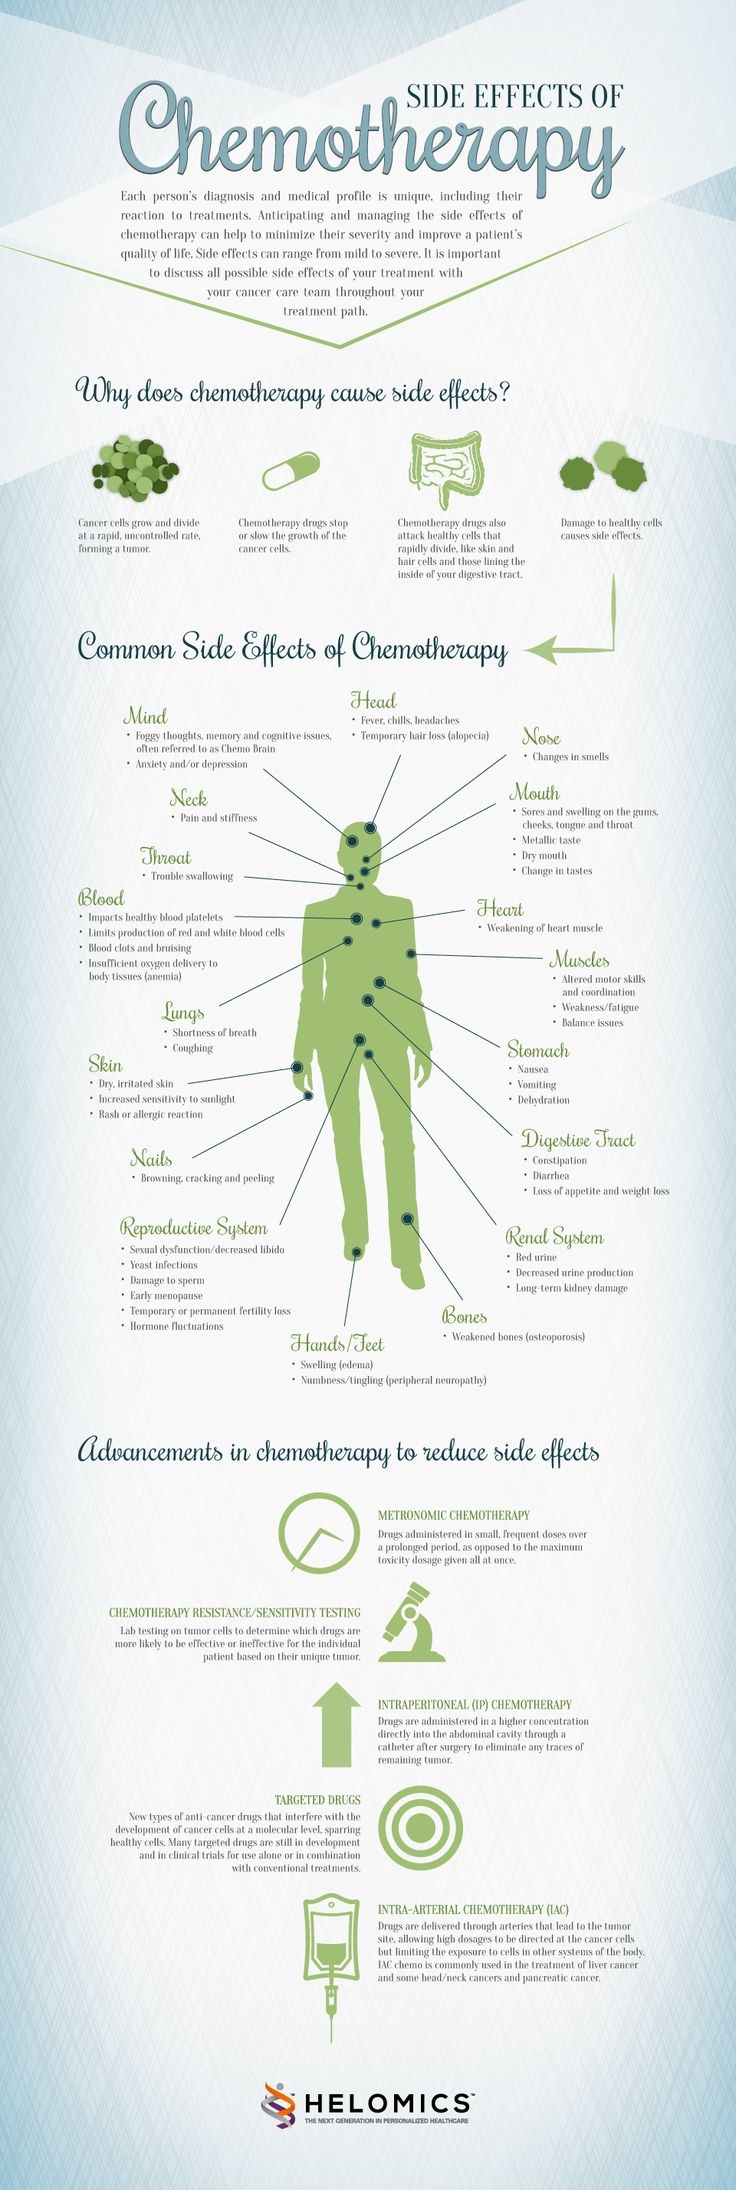 Learn more about the side effects of chemotherapy and new advancements being made in cancer treatment in this infographic